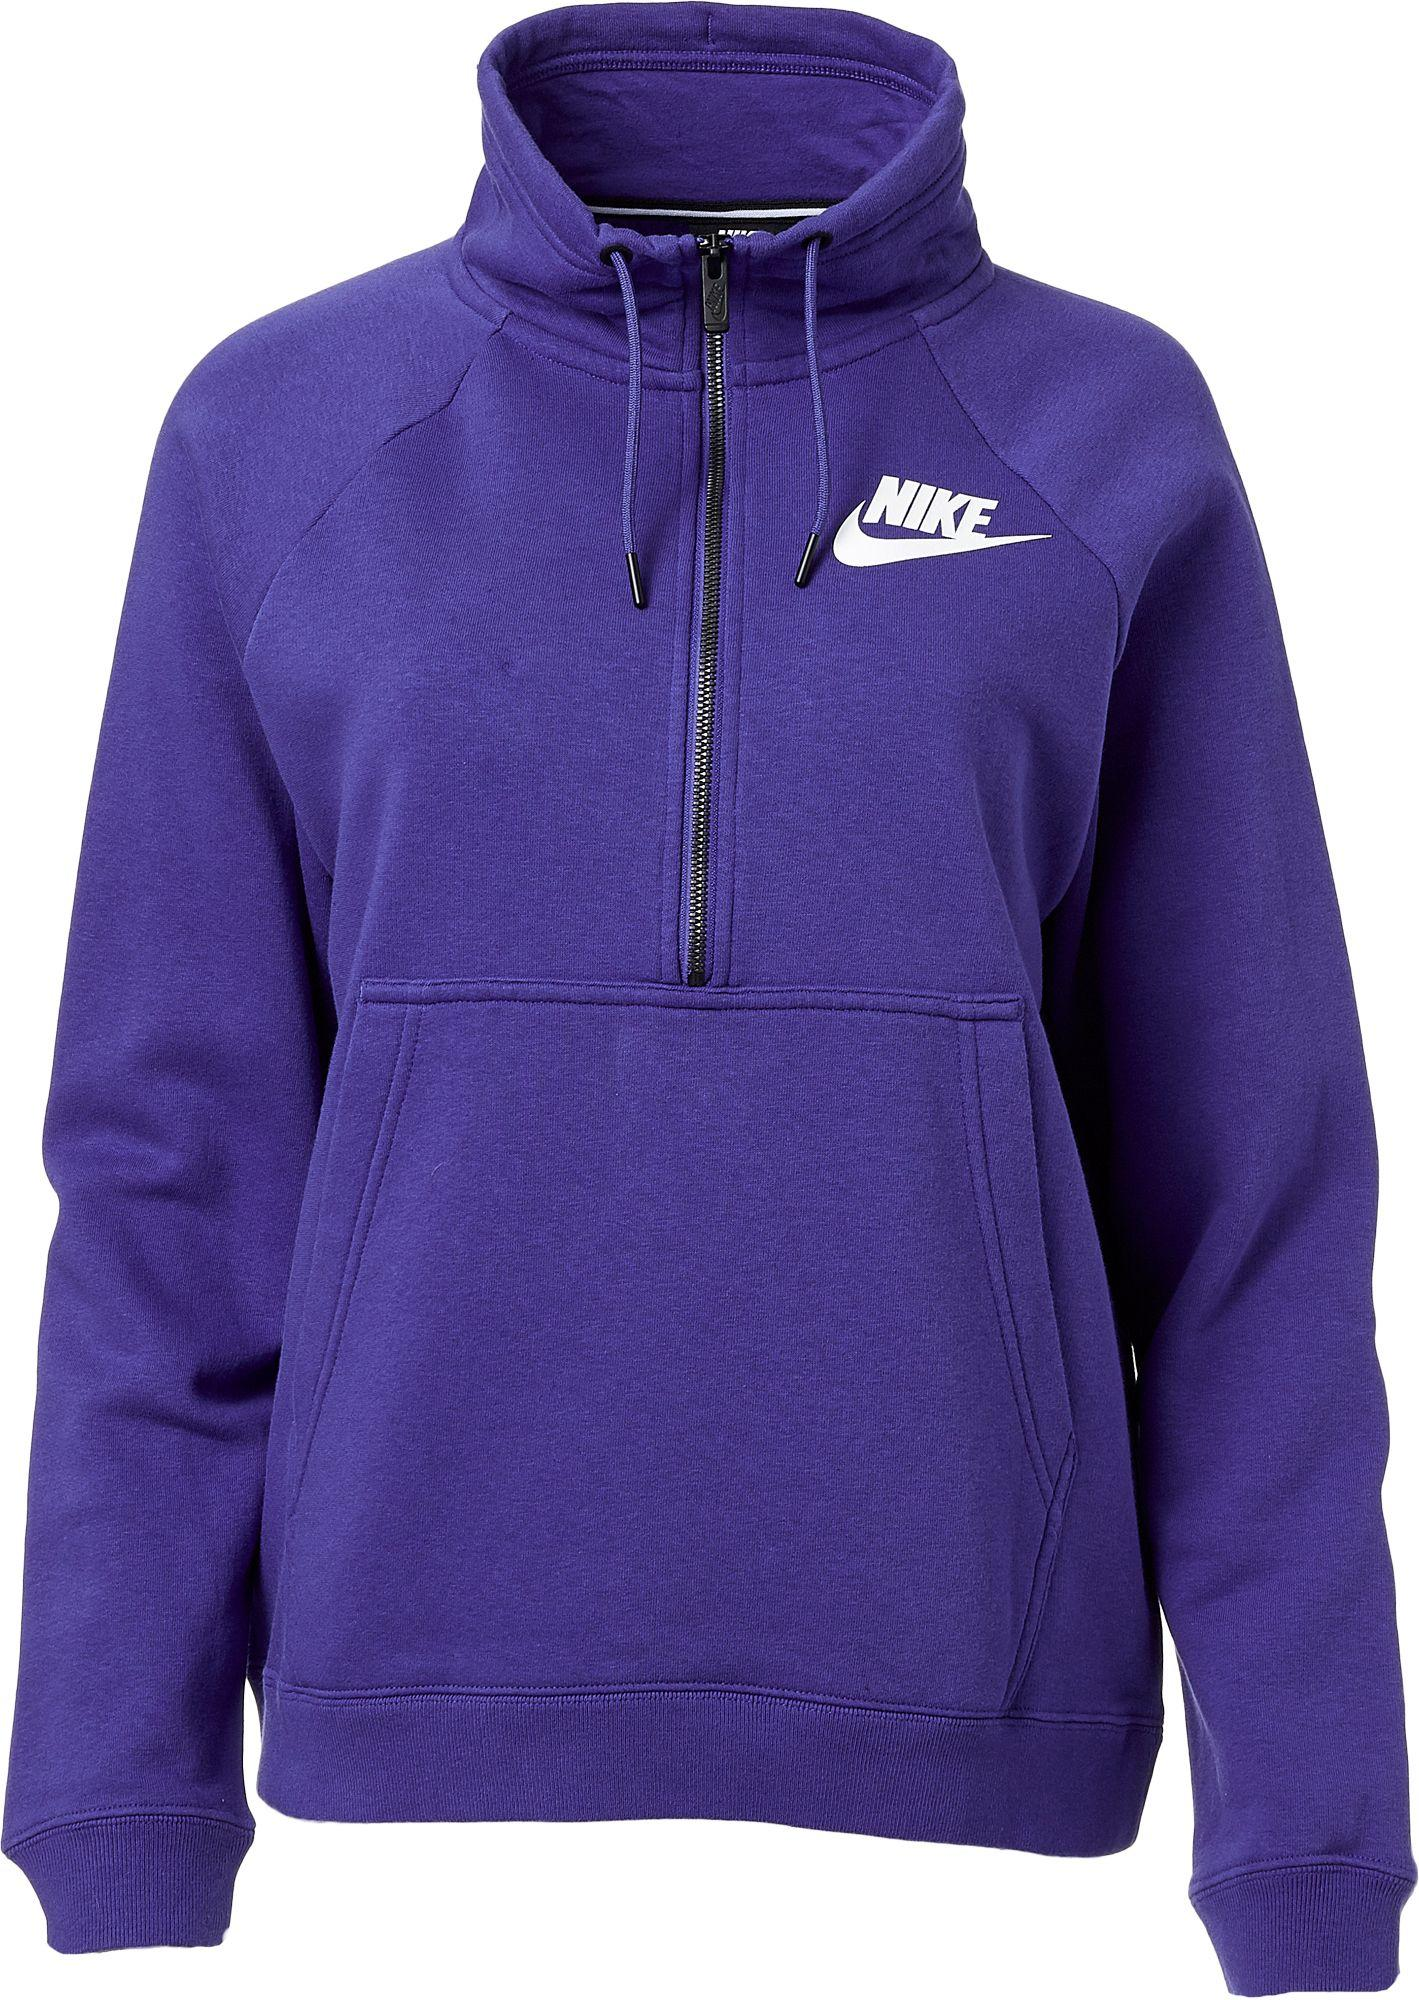 edab3ee822d2 Lyst - Nike Sportswear Rally Half-zip Sweatshirt in Purple